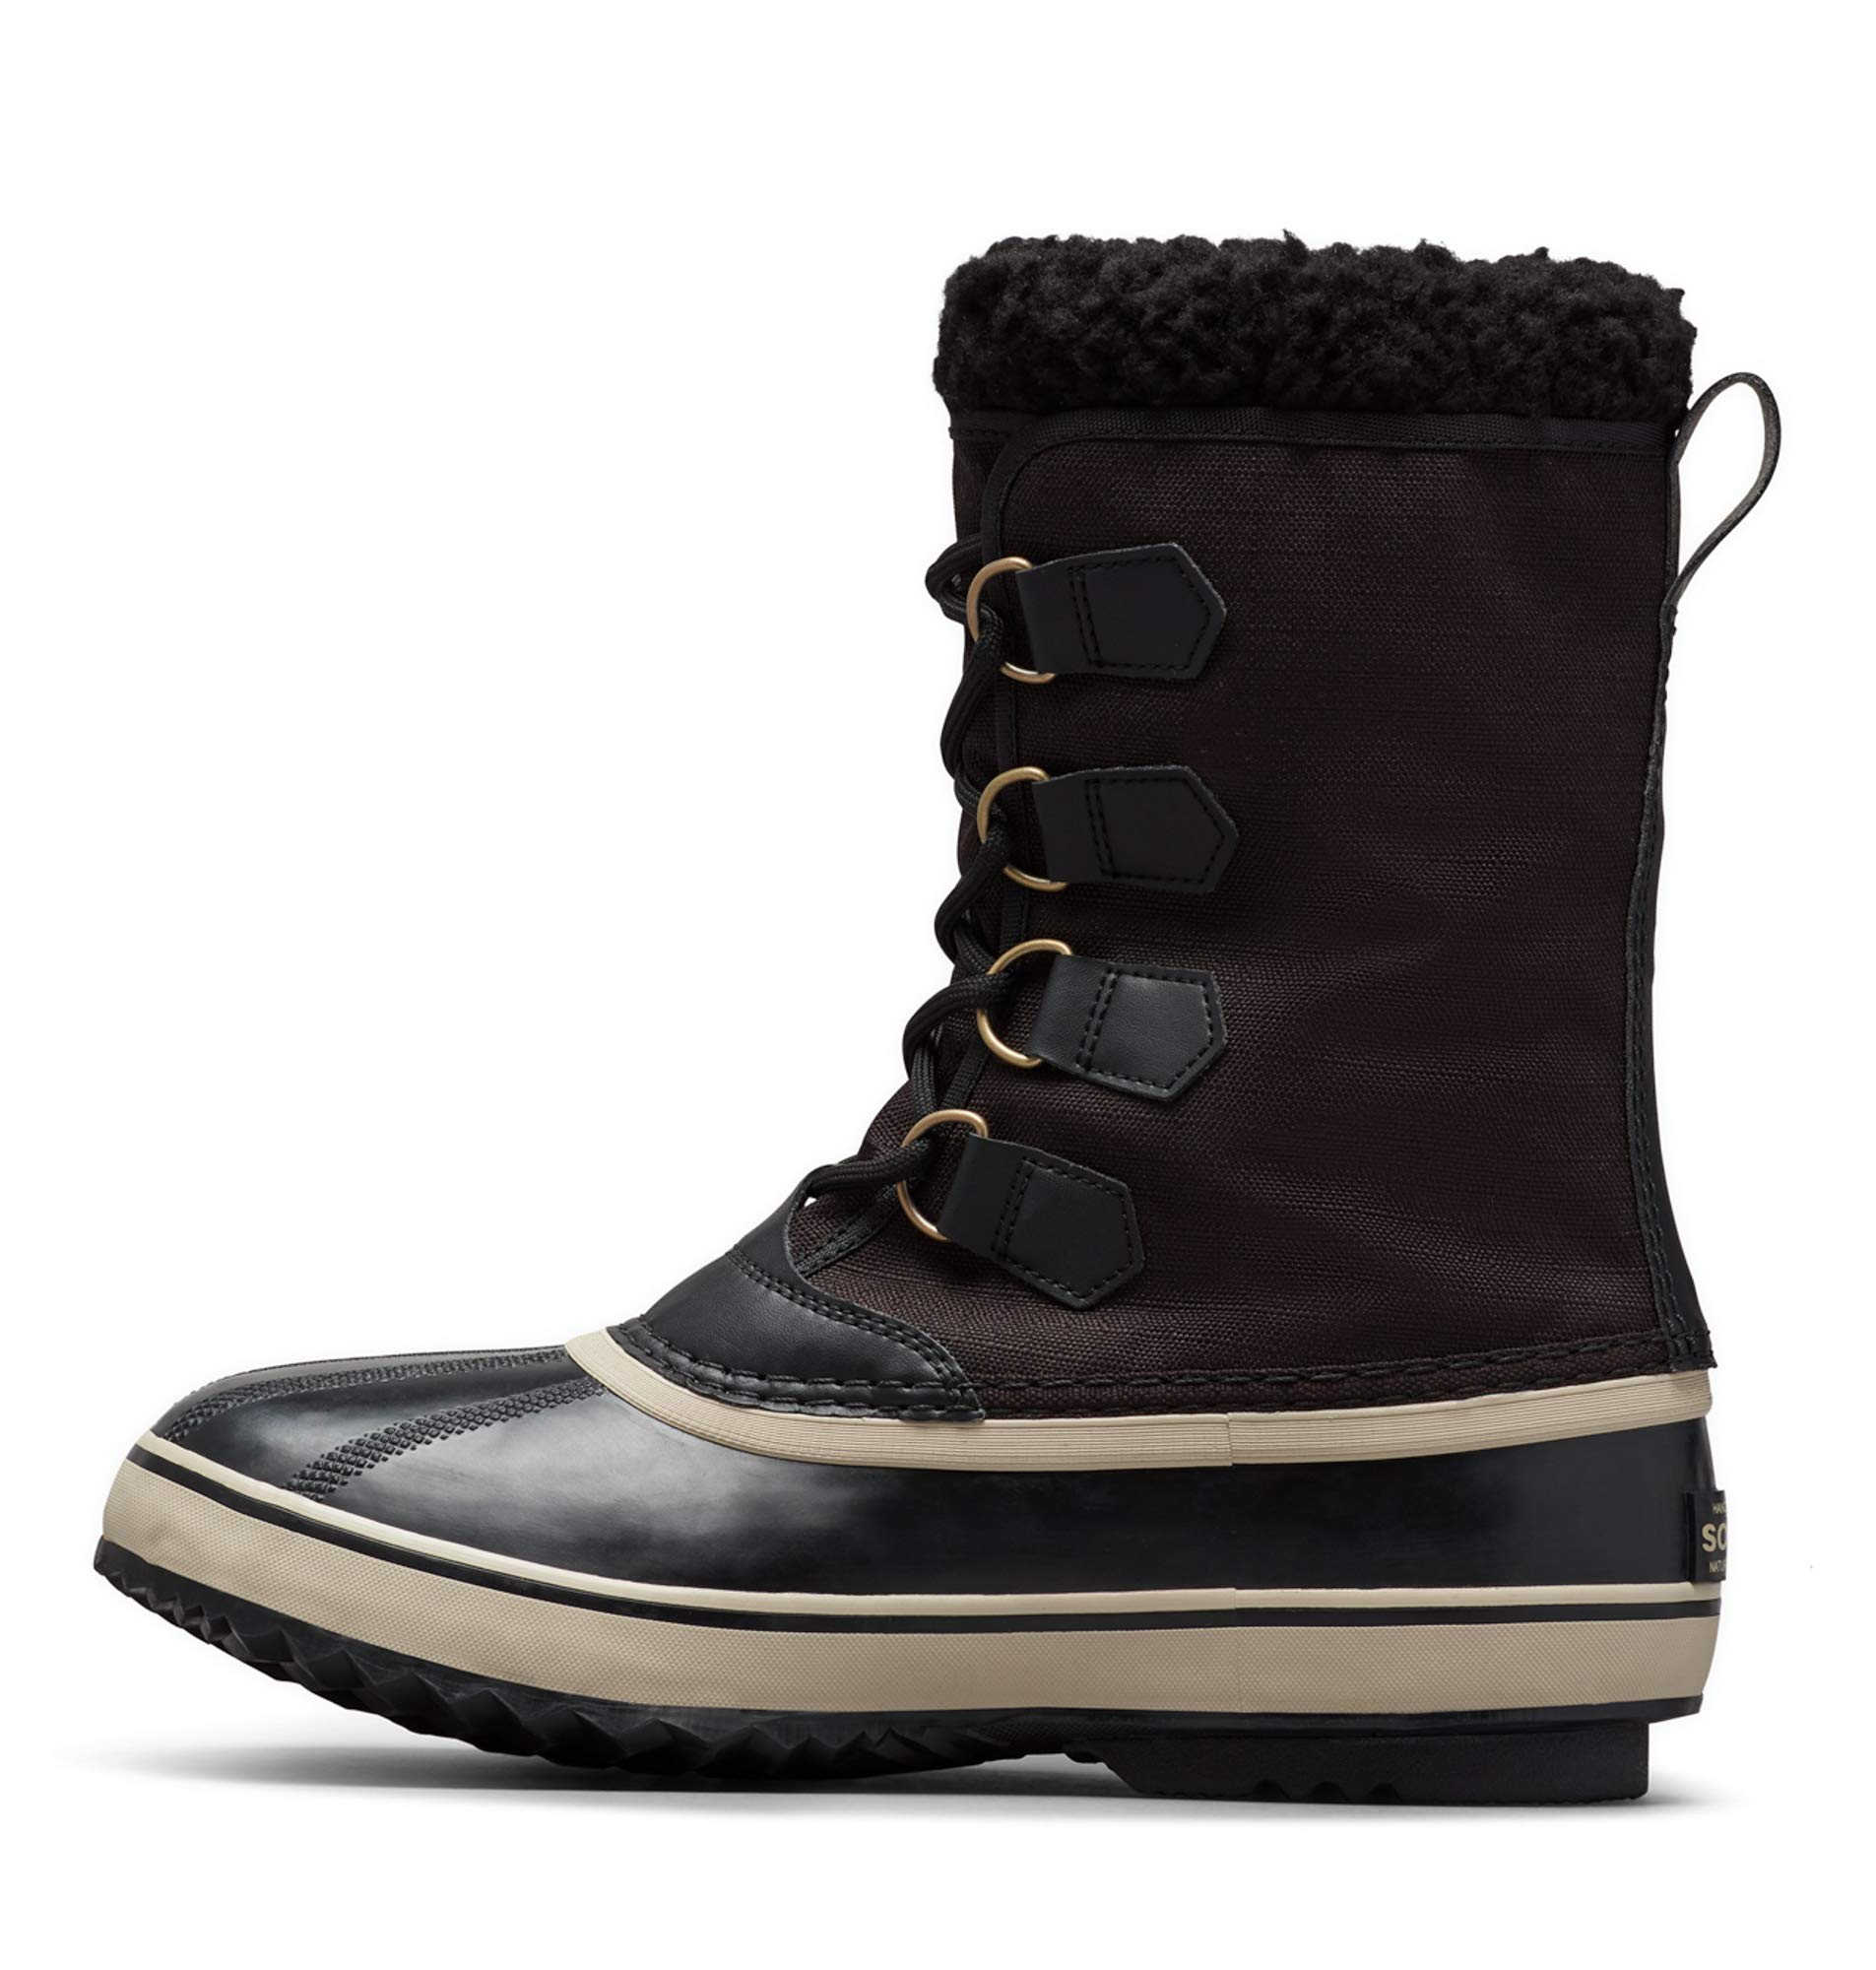 Sorel - Men's 1964 Pac Nylon Snow Boot for Winter, Black/Ancient Fossil, 7 M US by Sorel